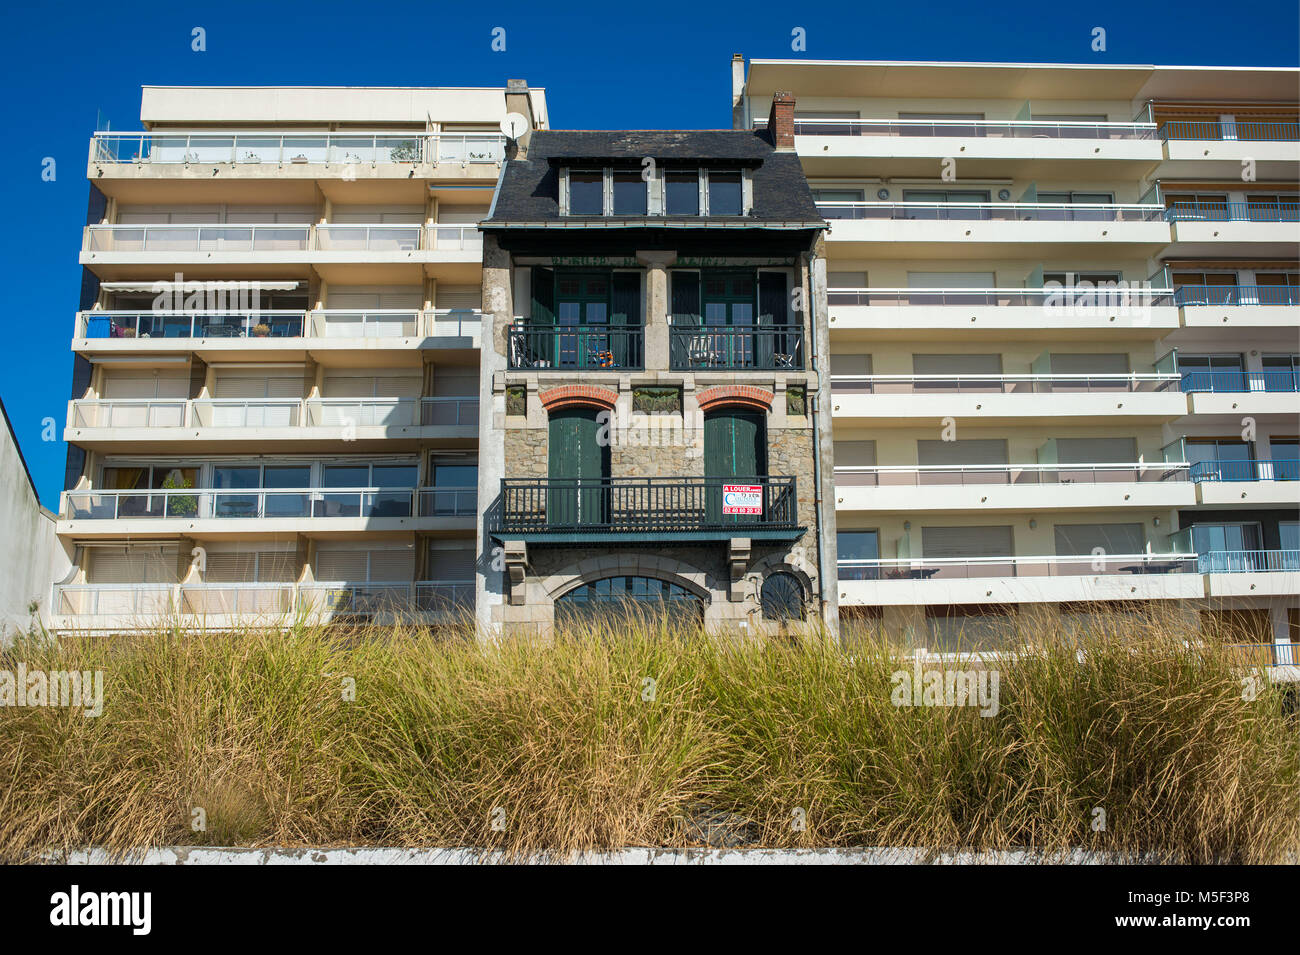 La Baule, France. - Stock Image